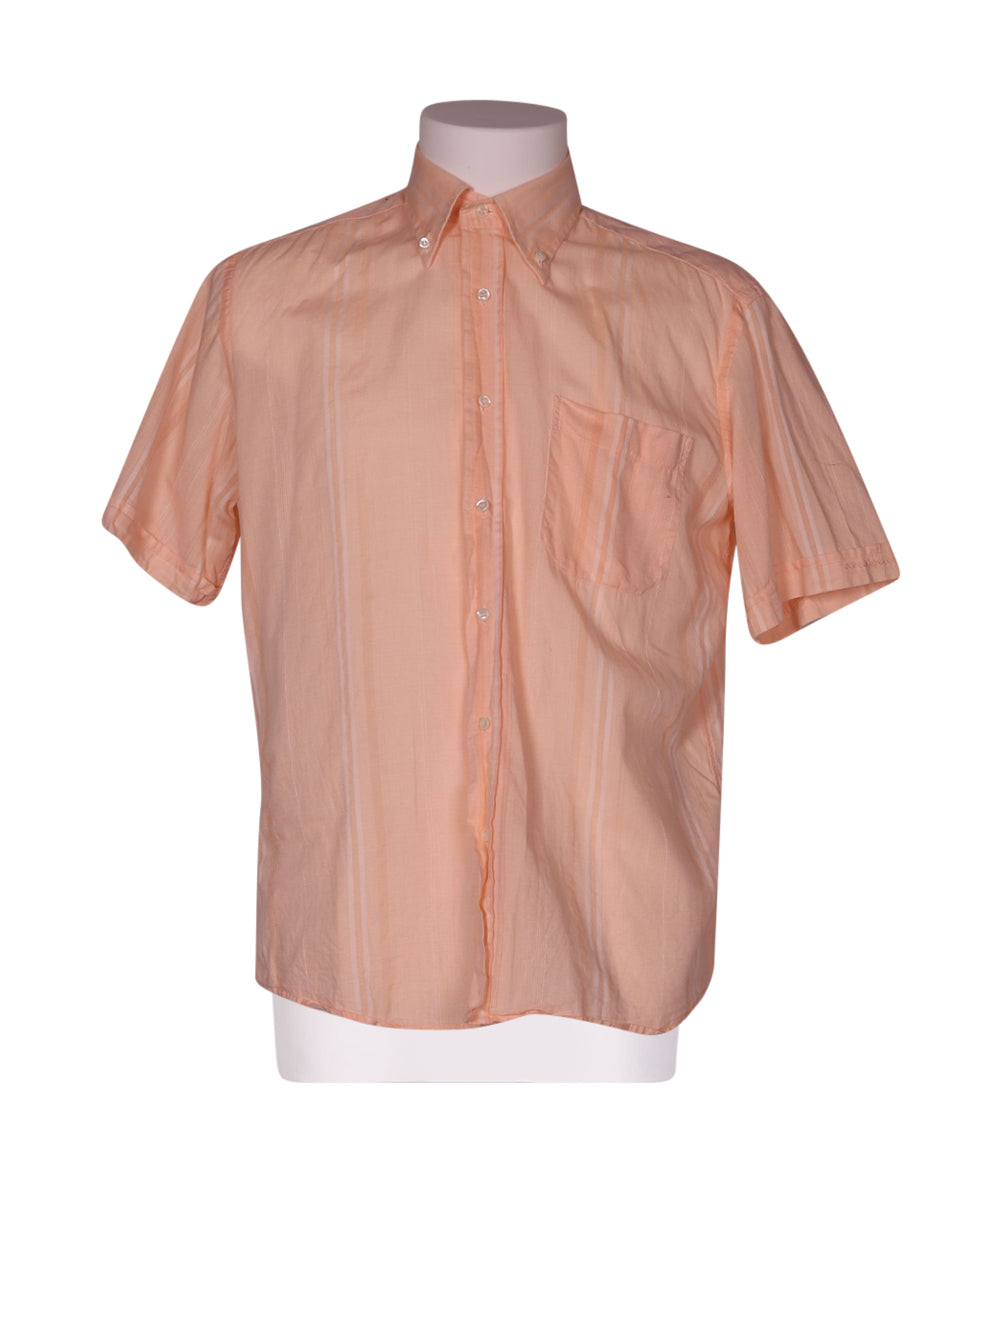 Front photo of Preloved Rocco Barocco Pink Man's shirt - size 34/XS